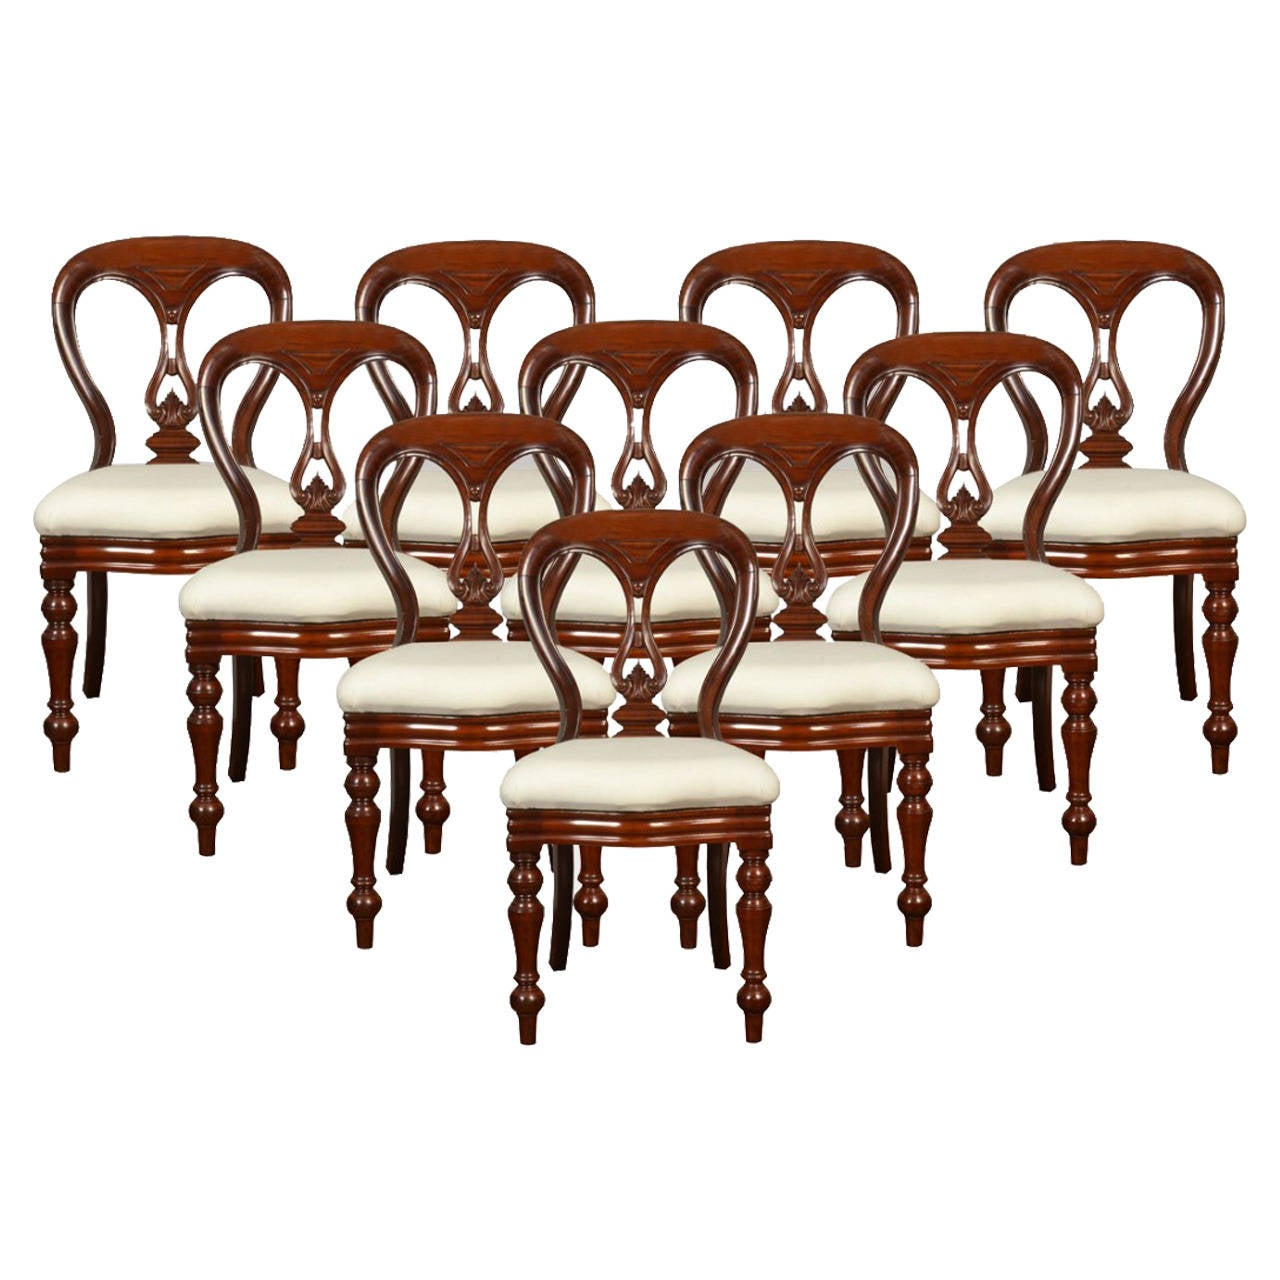 Antique victorian dining chairs - Set Of Ten Mahogany Victorian Dining Chairs Antique